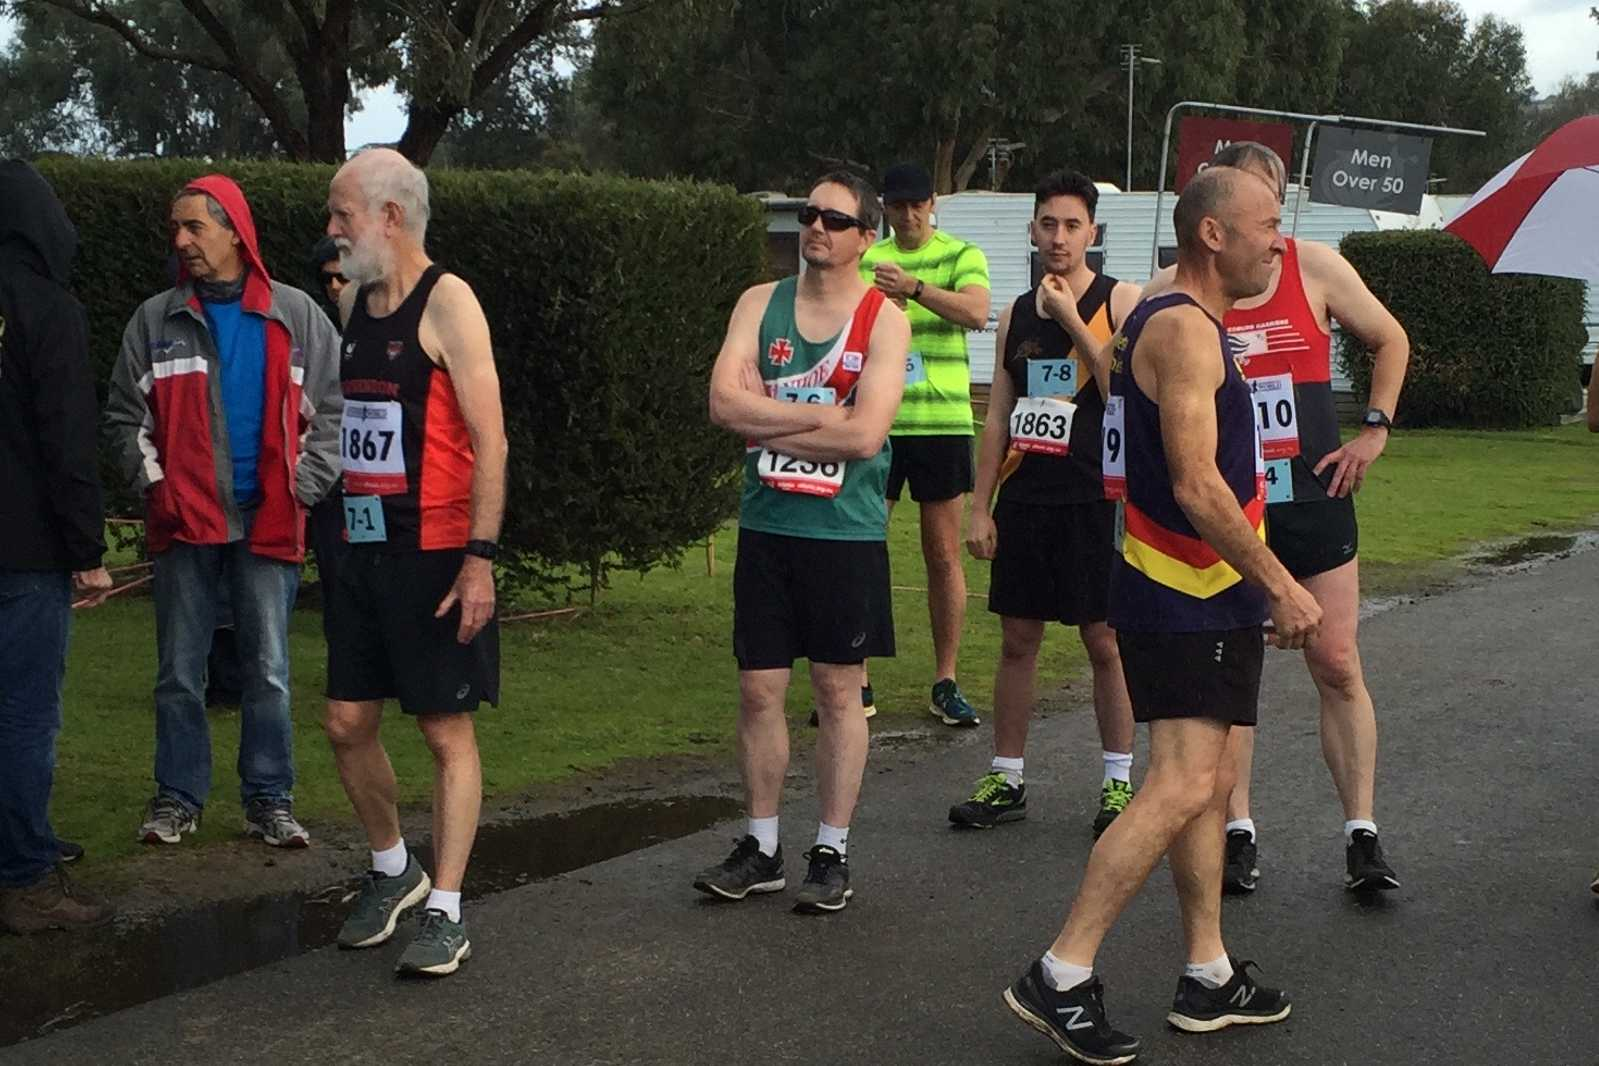 Chris looking relaxed at the Division 7 start line